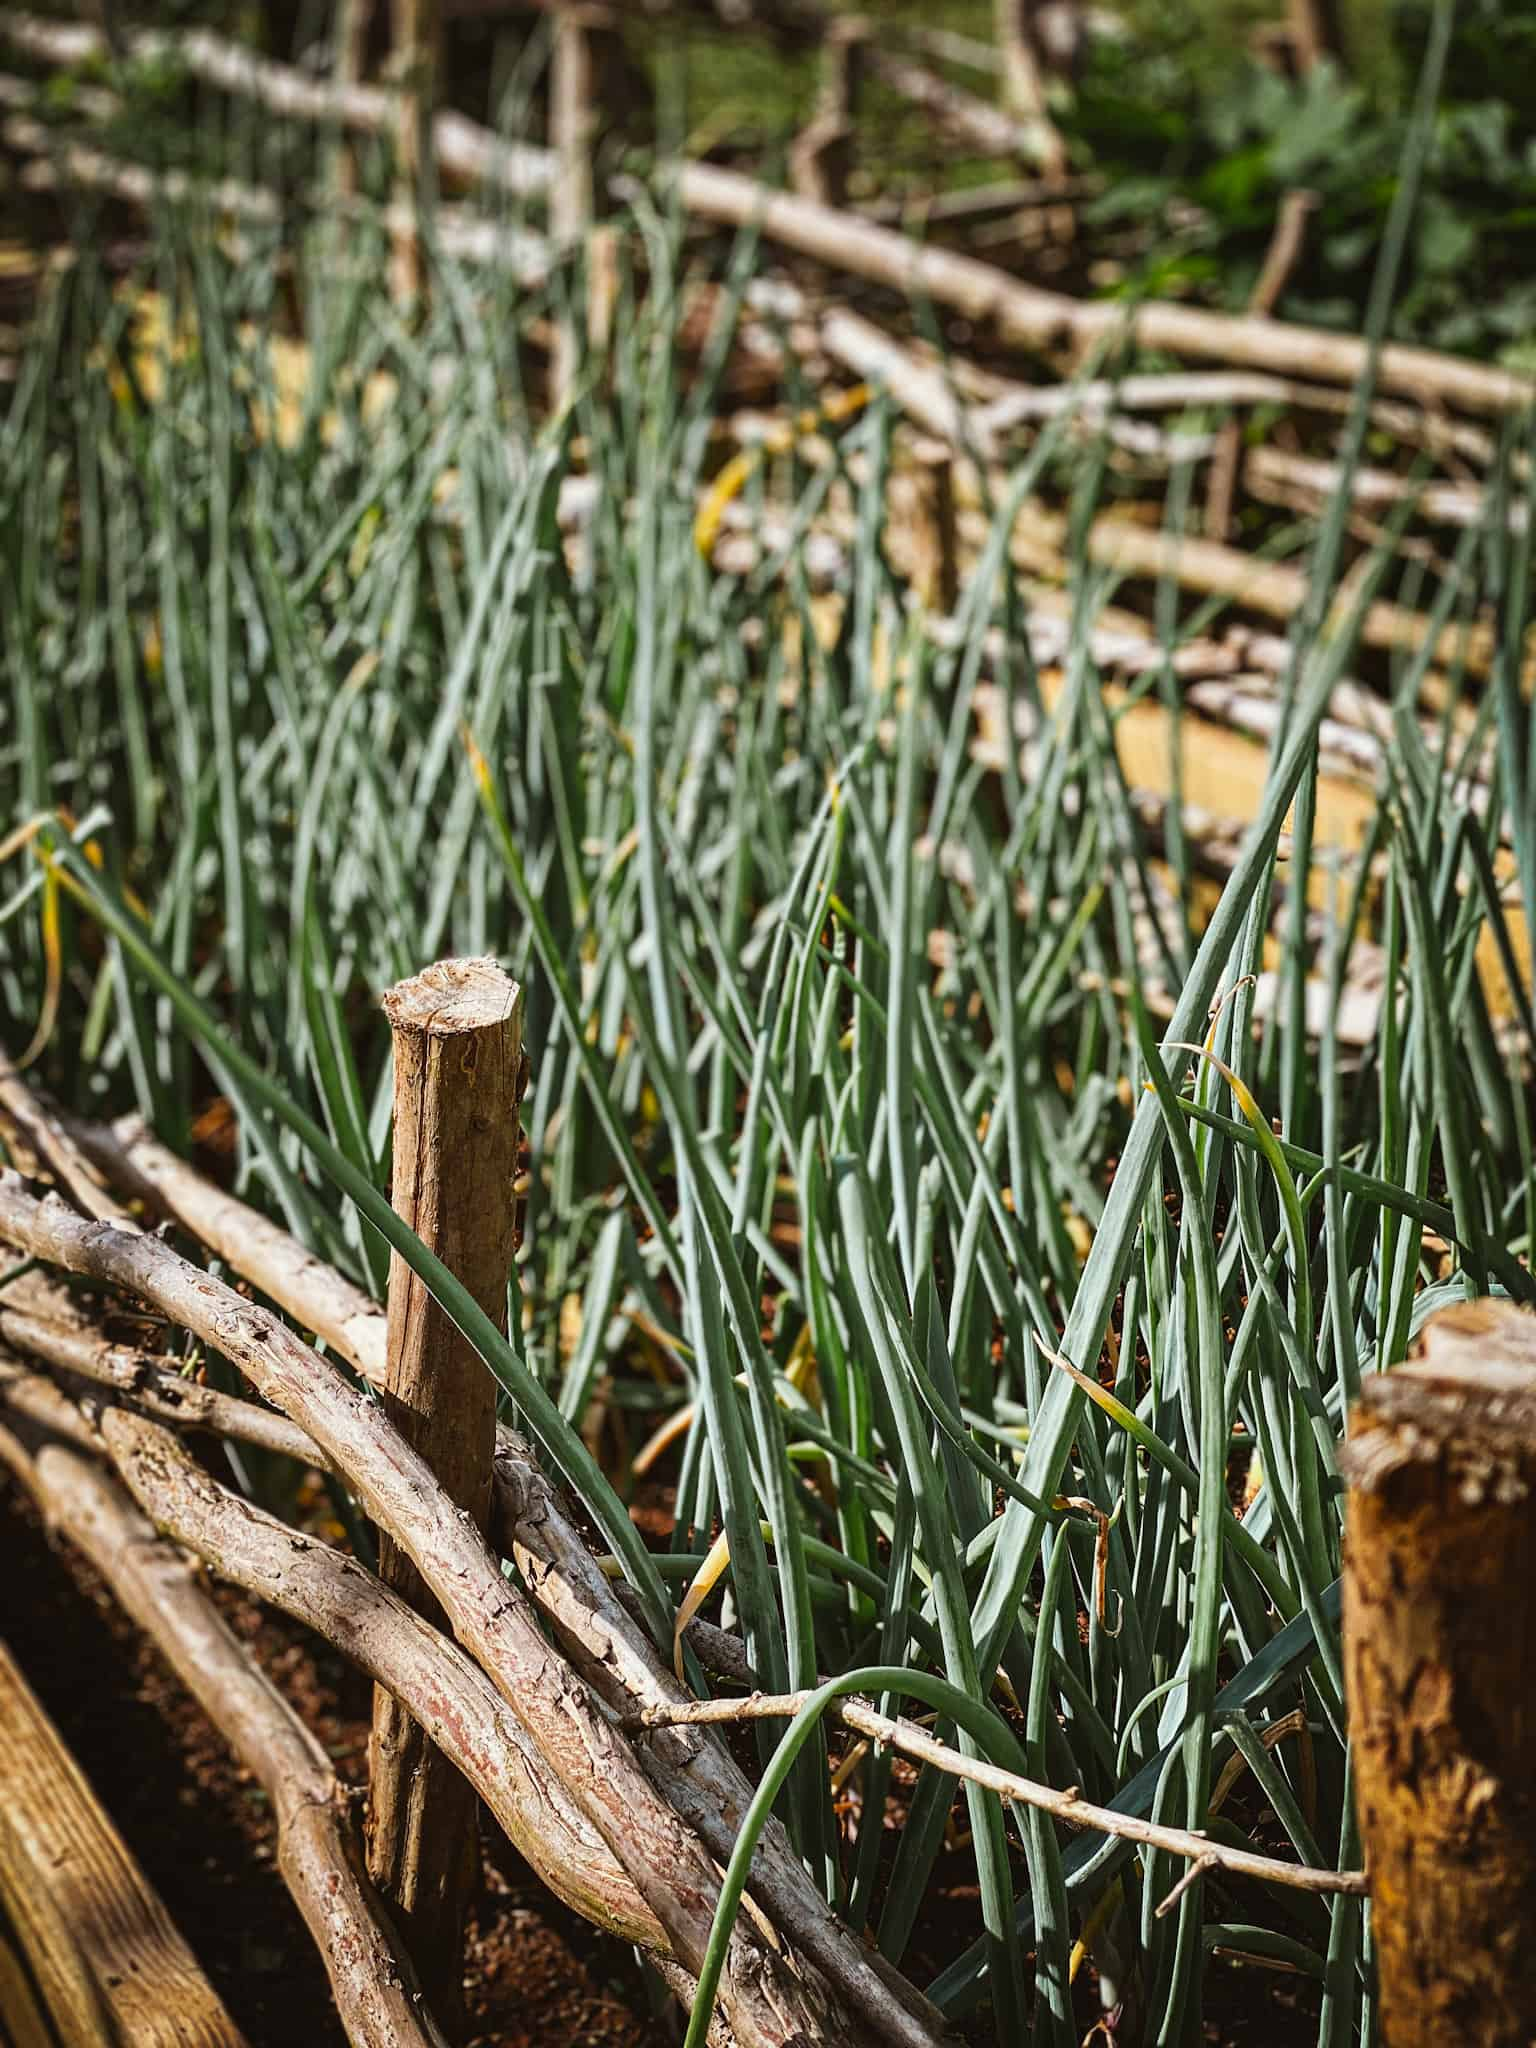 onions growing in a raised garden bed with wattle fencing